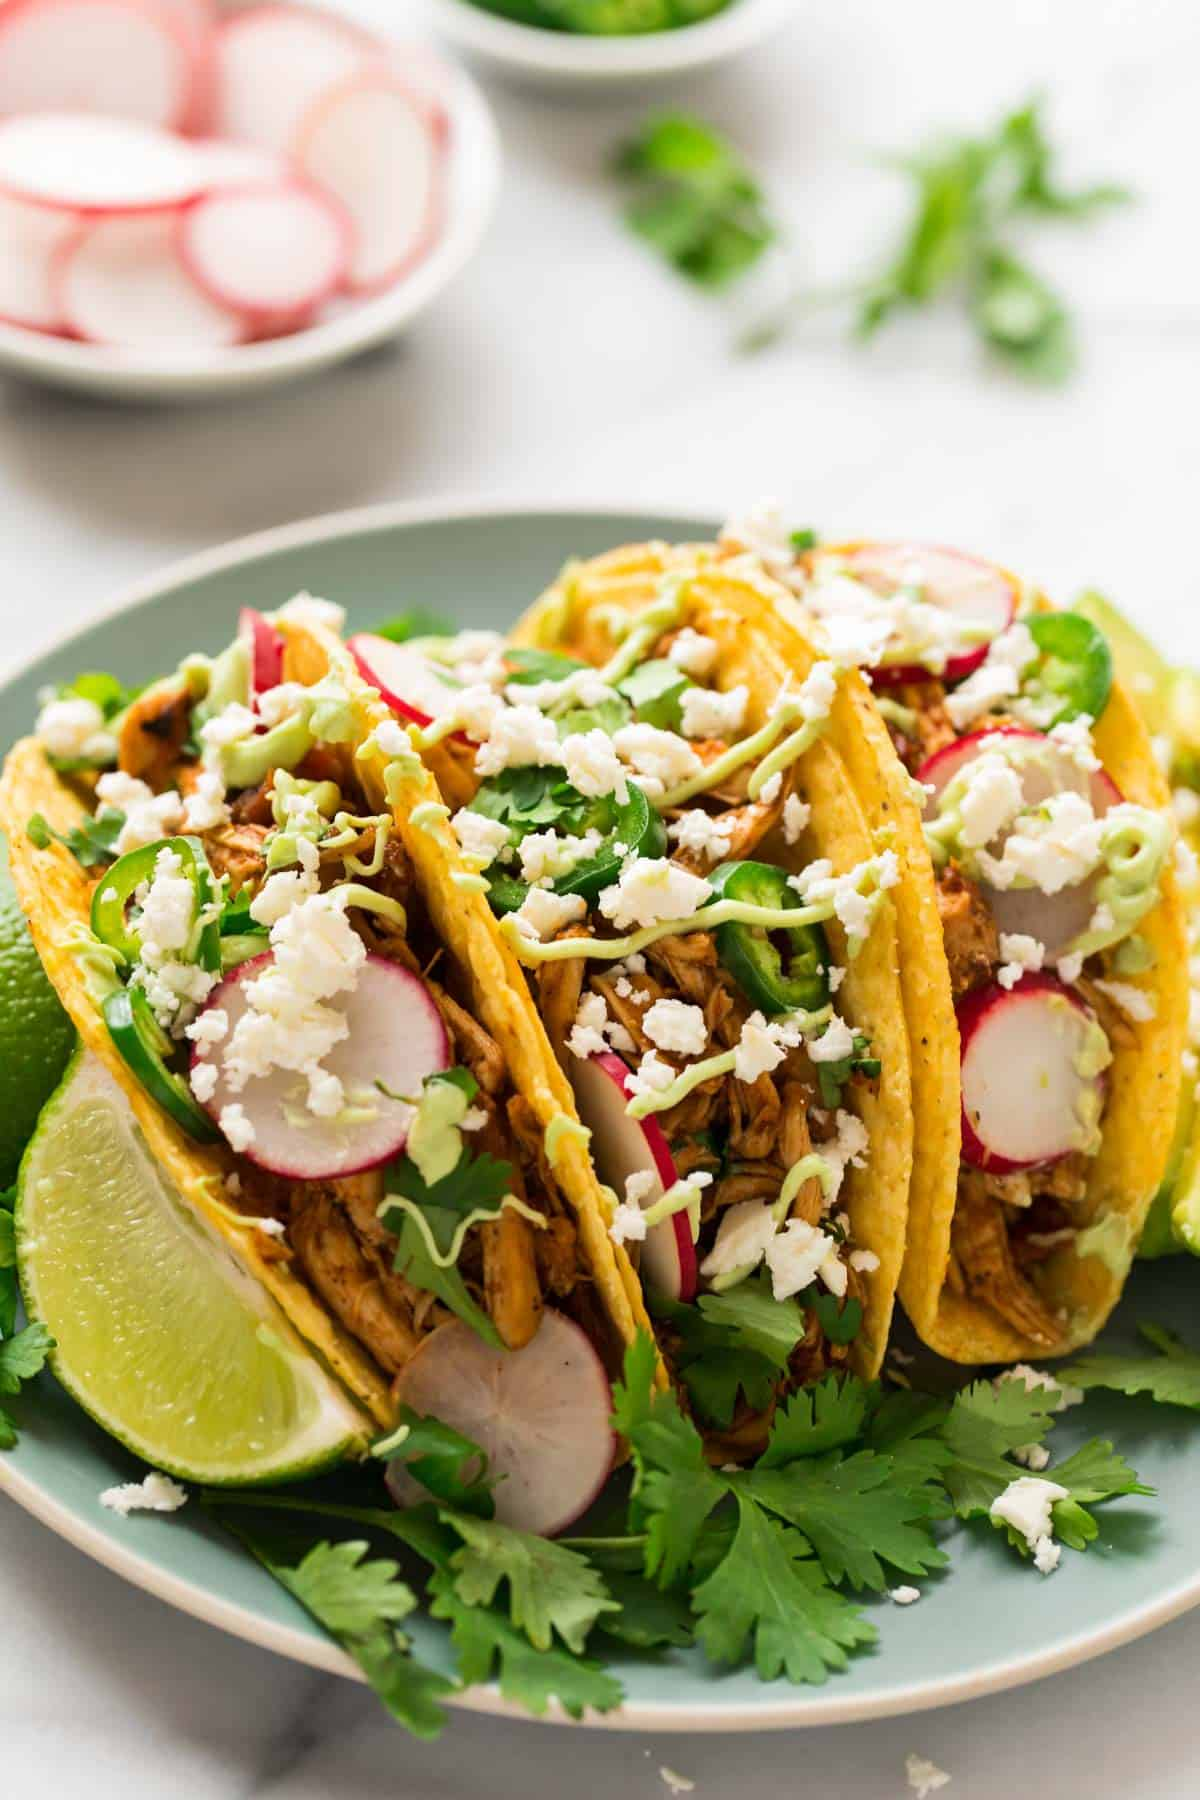 Instant Pot Shredded Chicken Tacos in hard corn shells on a plate garnished with jalapenos, radish, queso fresco, cilantro and avocado crema